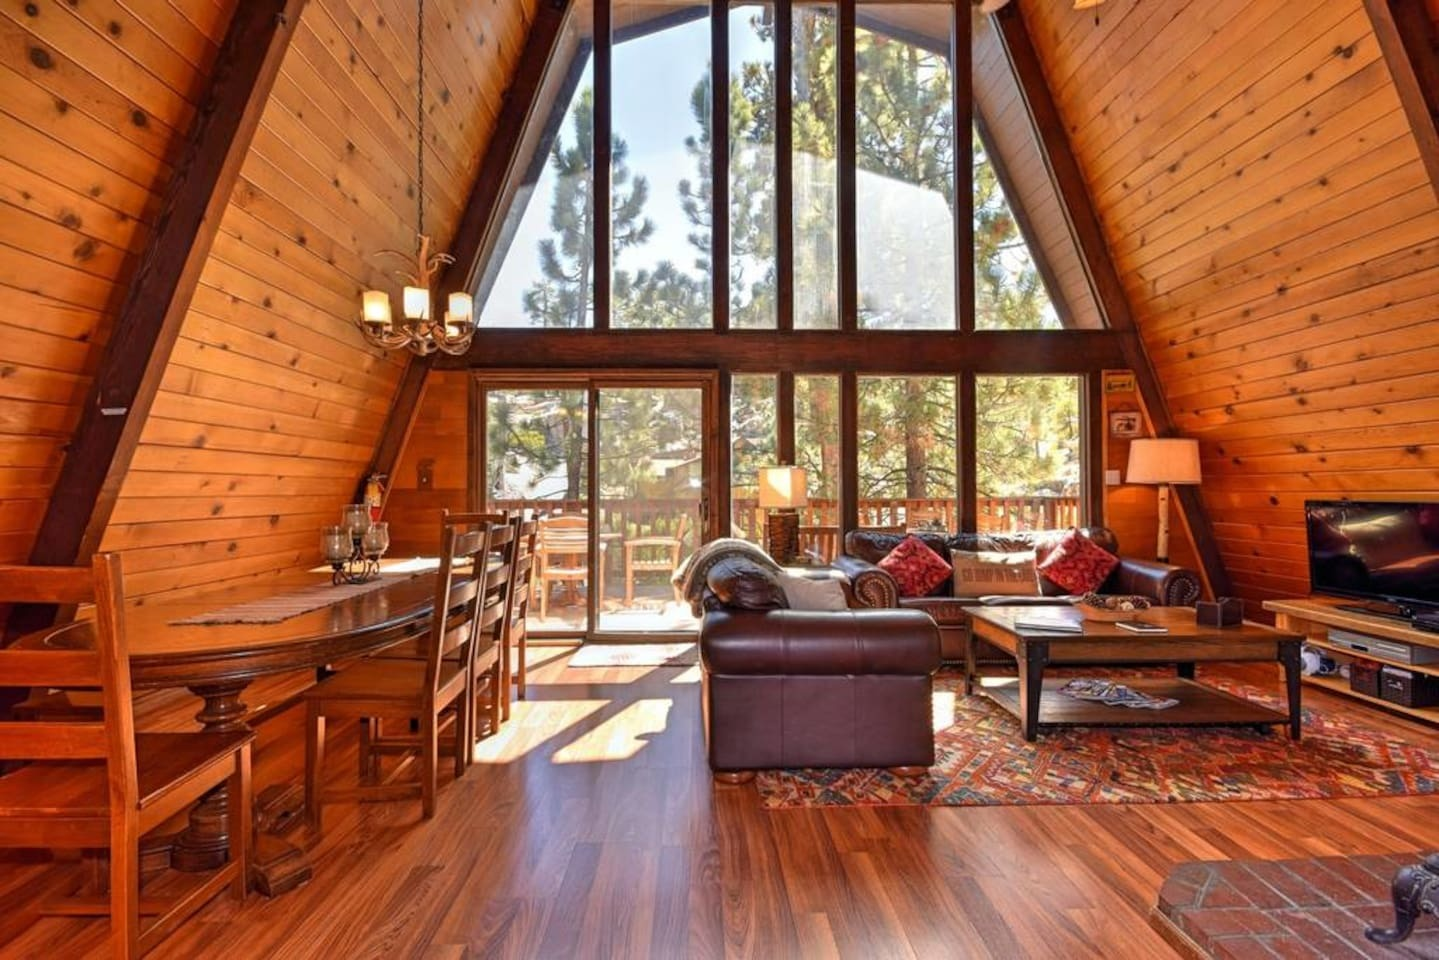 arrowhead weekend cabins for cheap rent by owner rental sale lake